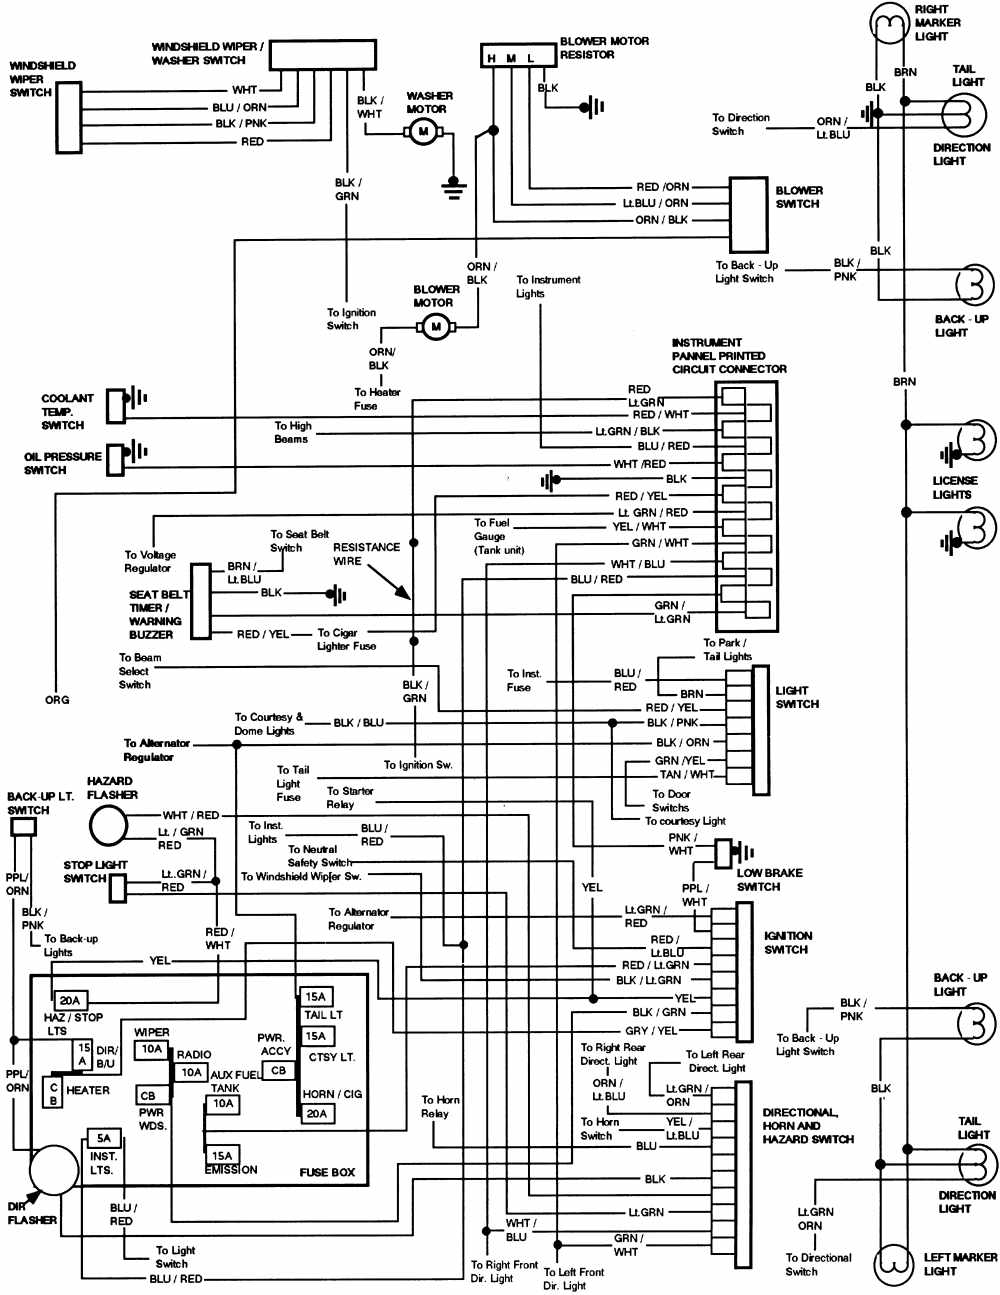 2009 ford f150 trailer wiring harness diagram